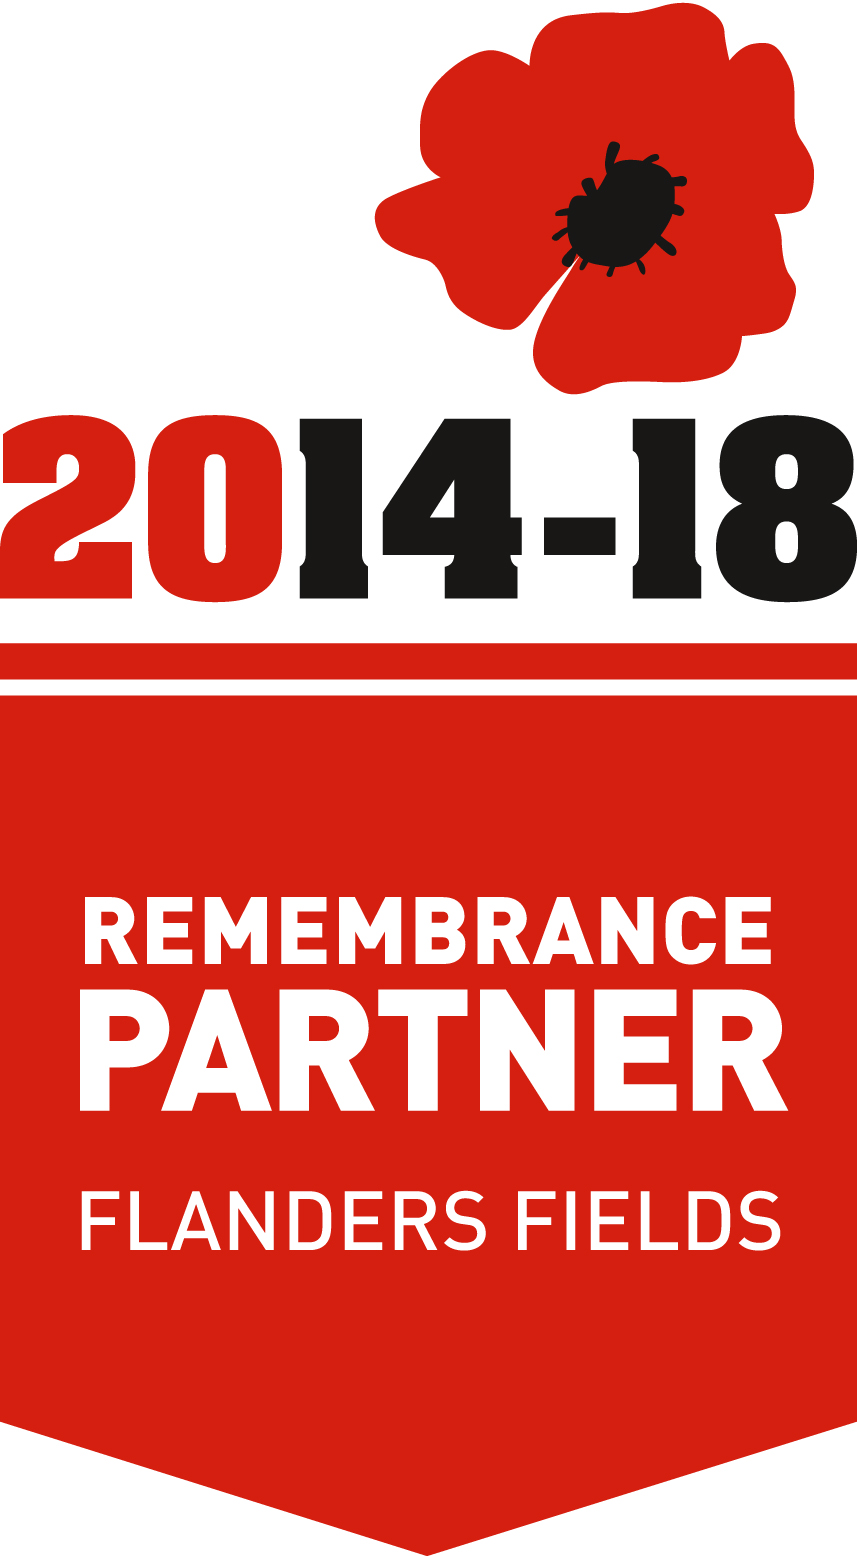 Remembrance Partners Flanders Fields